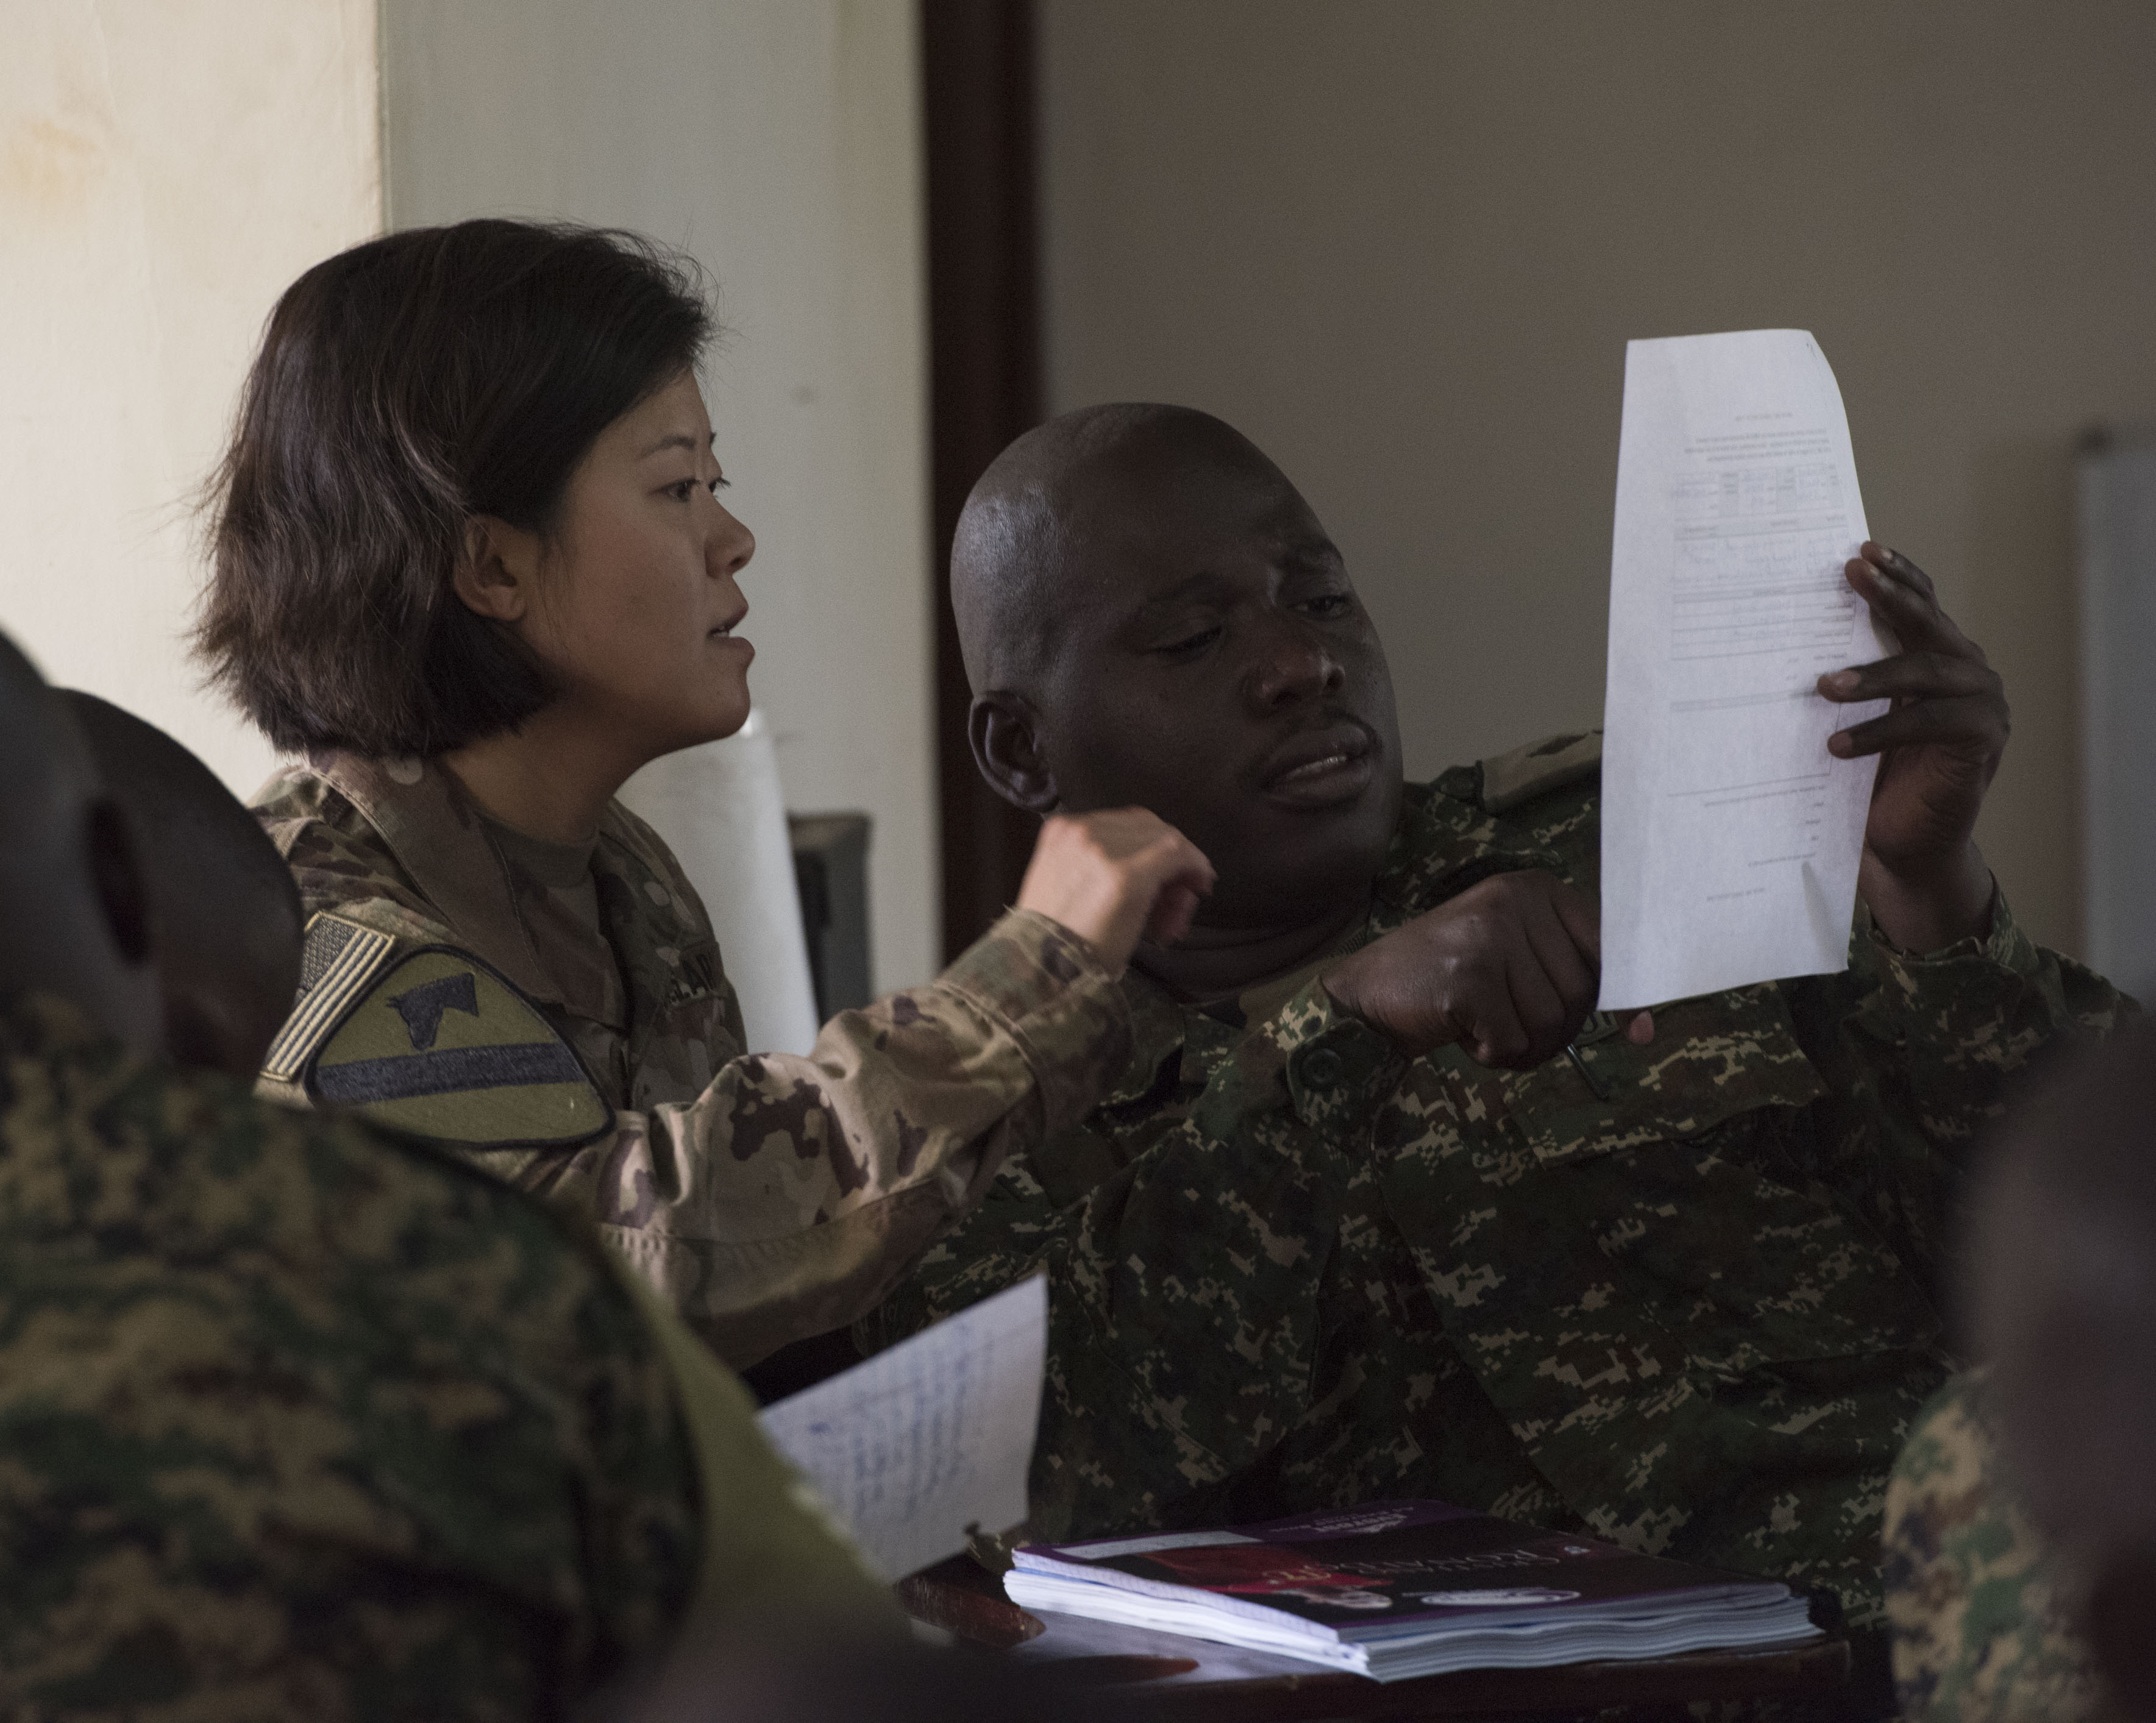 U.S. Army Sgt. 1st Class Bethany Bedard, assigned to the 407th Civil Affairs (CA) Battalion, attached to the Combined Joint Task Force - Horn of Africa, teaches a Civil-Military (CIMIC) course to soldiers from the Uganda People's Defence Force (UPDF) as part of a Civil Affairs Tactical Company Course held at Camp Singo, Uganda, Feb. 08, 2018.  CJTF-HOA service members are forward deployed to Camp Singo to advise and assist the UPDF in preparing Ugandan Battle Group 25 for an upcoming deployment in support of the African Union Mission in Somalia (AMISOM). (U.S. Air National Guard photo by Staff Sgt. Allyson L. Manners)